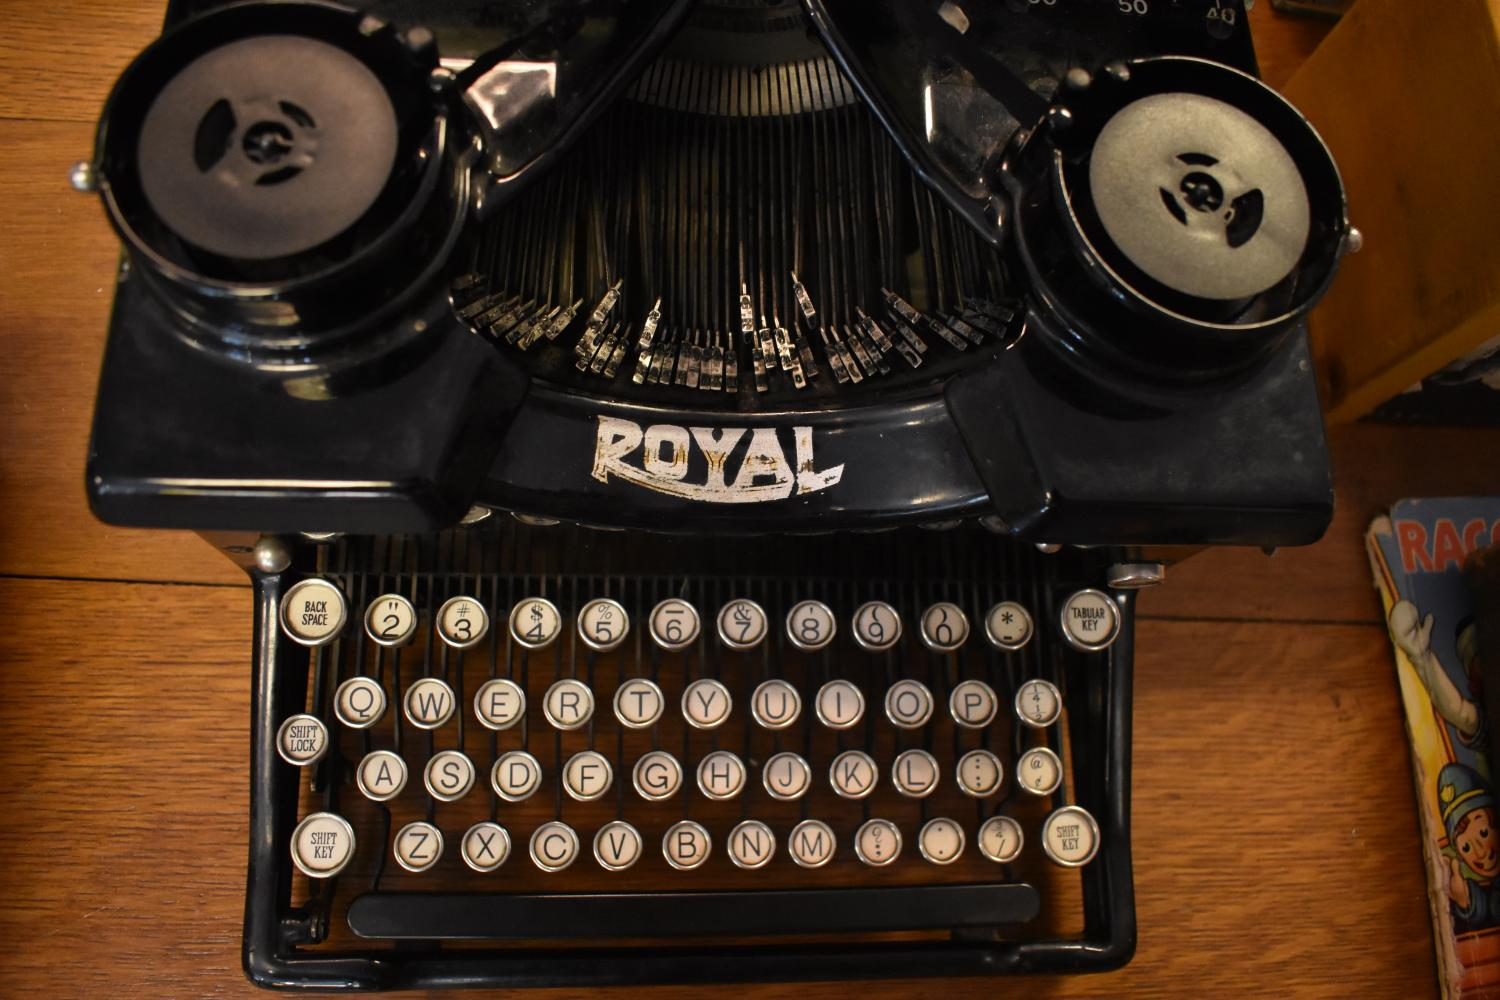 This typewriter, placed on a table in The Dusty Bookshelf, helps to display some of the classic books they have to offer.